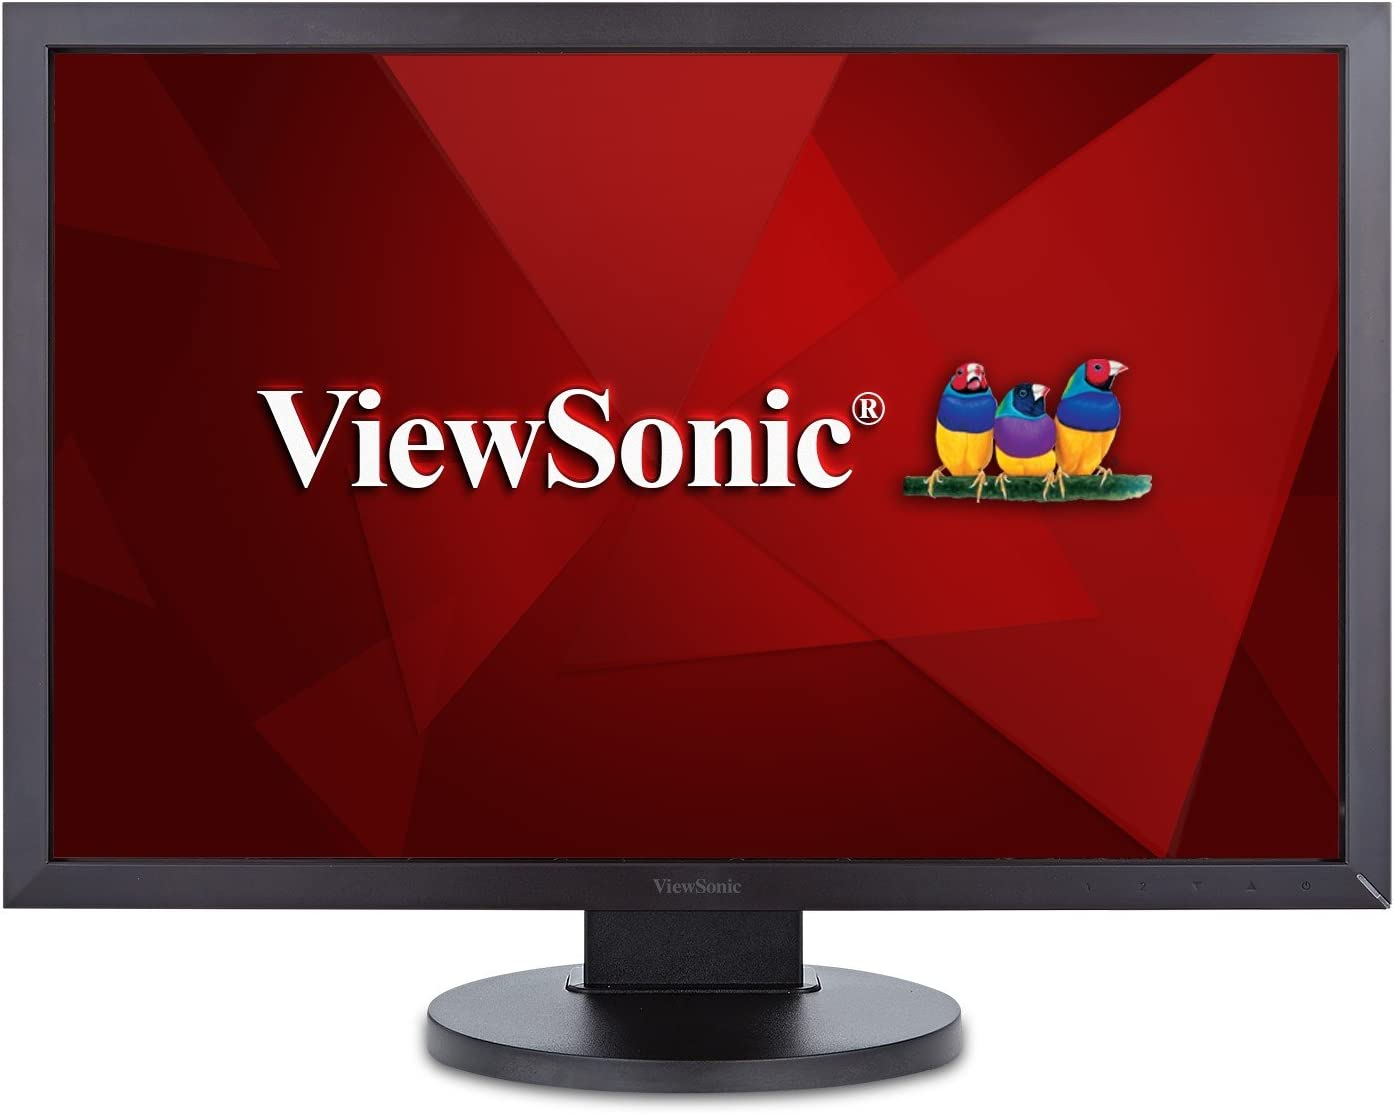 ViewSonic VG9SM 9 Inch IPS 9p Ergonomic Monitor with DisplayPort DVI  and VGA for Home and Office, Black